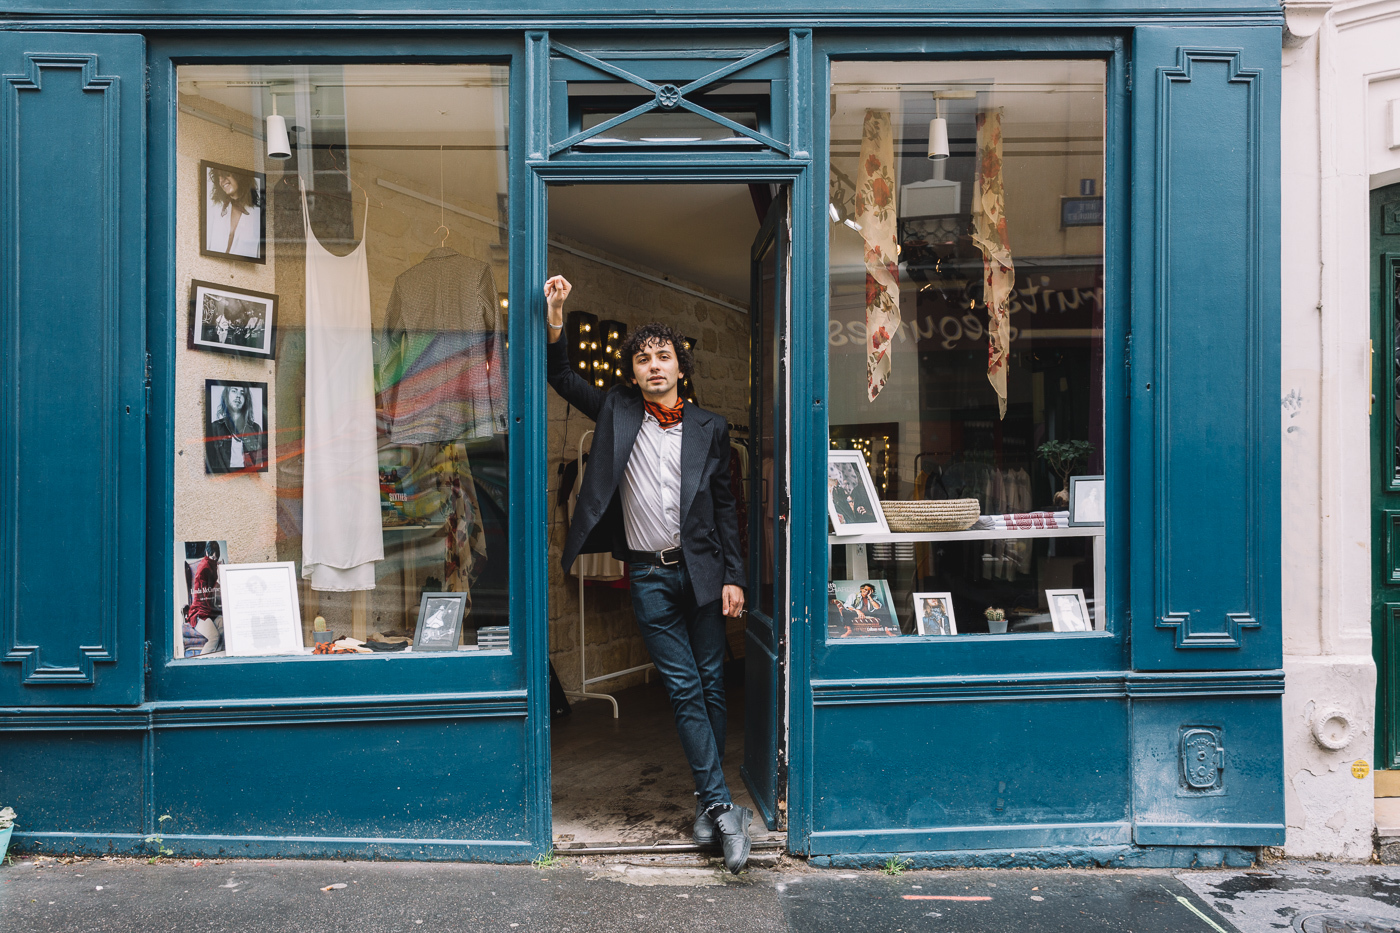 Good Morning Keith, pop up, how to build a pop up, France pop up, things to see in Paris, short-term retail,